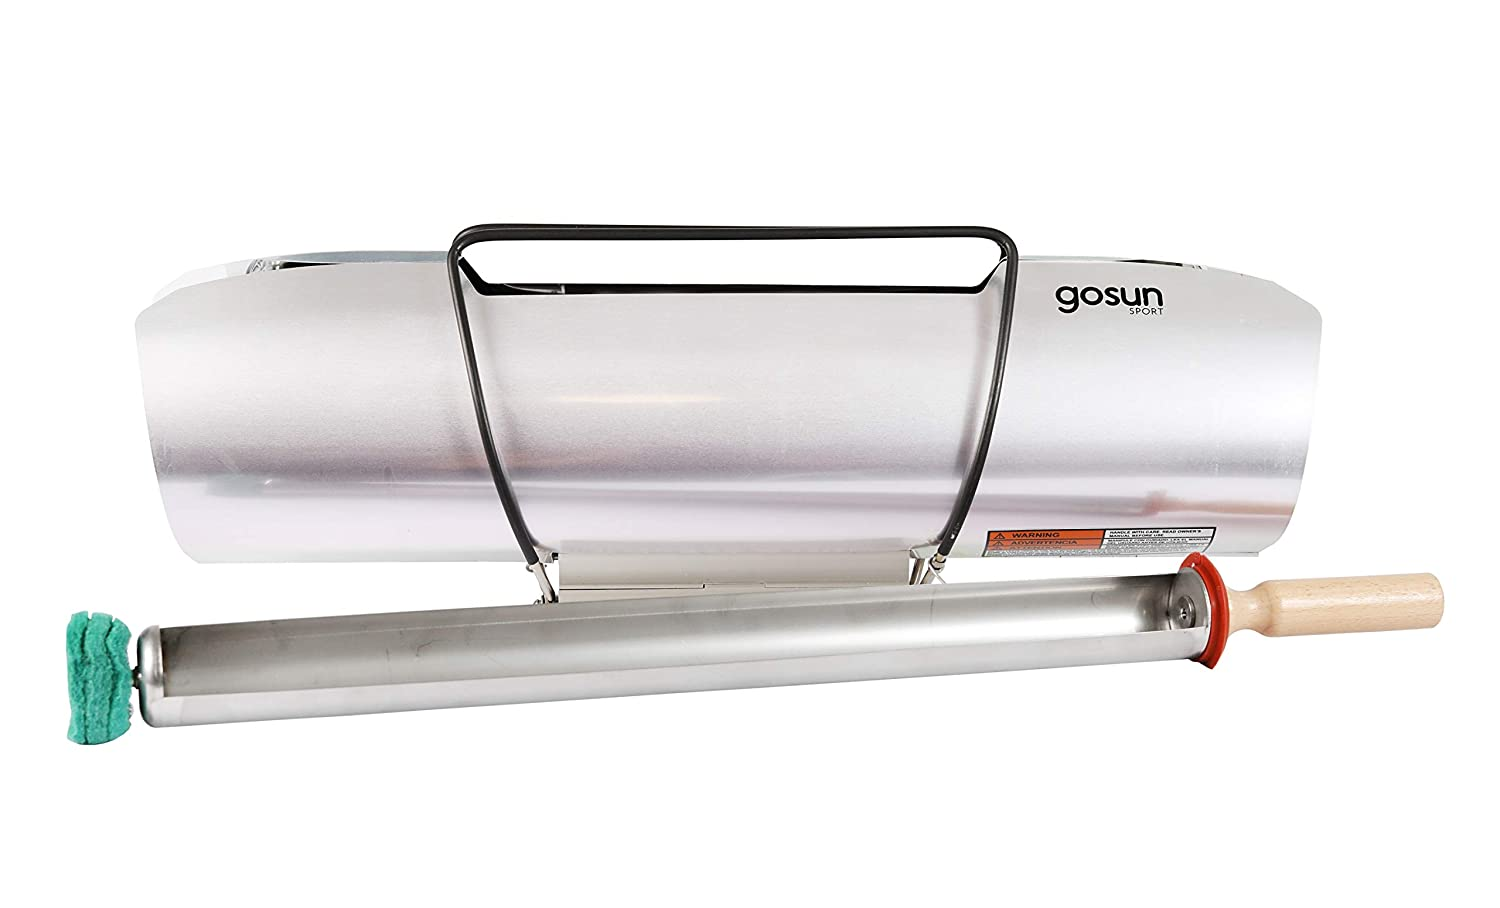 GoSun Sport - Portable Solar Cooker for Easy, Delicious, and Versatile Meals - Cooks Food in as Little as 20 Minutes